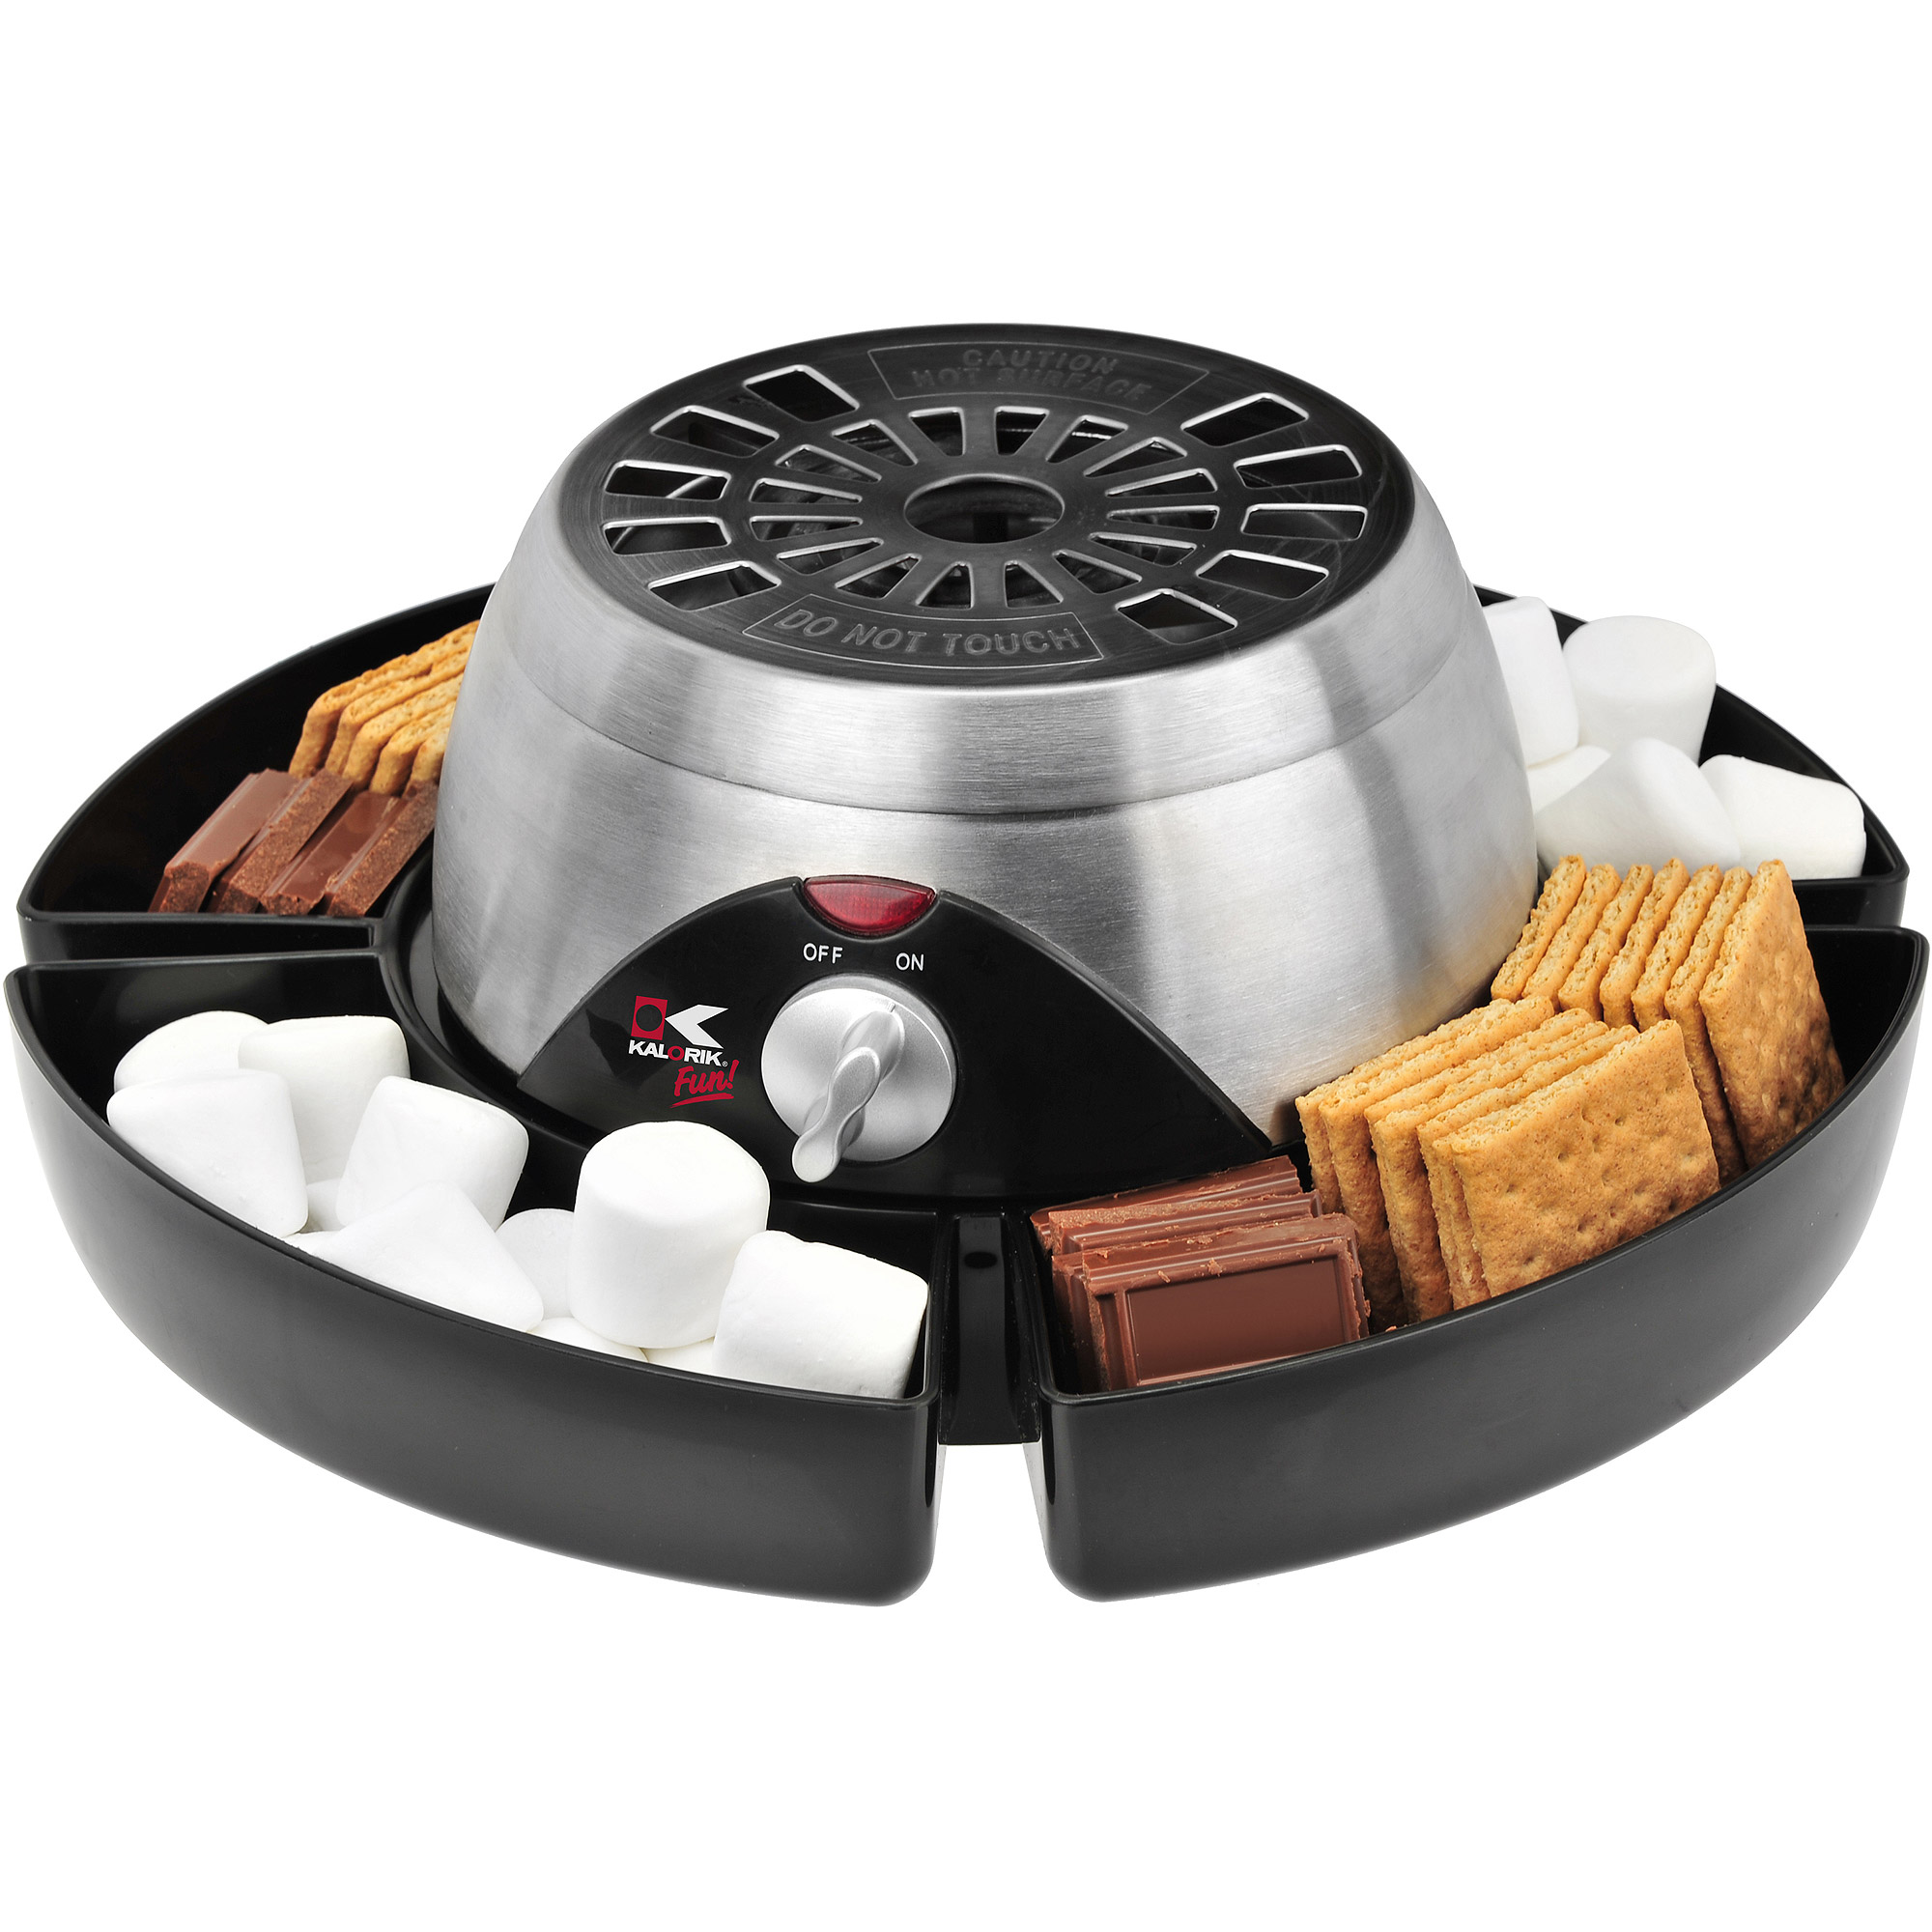 Kalorik Stainless Steel S'mores Maker